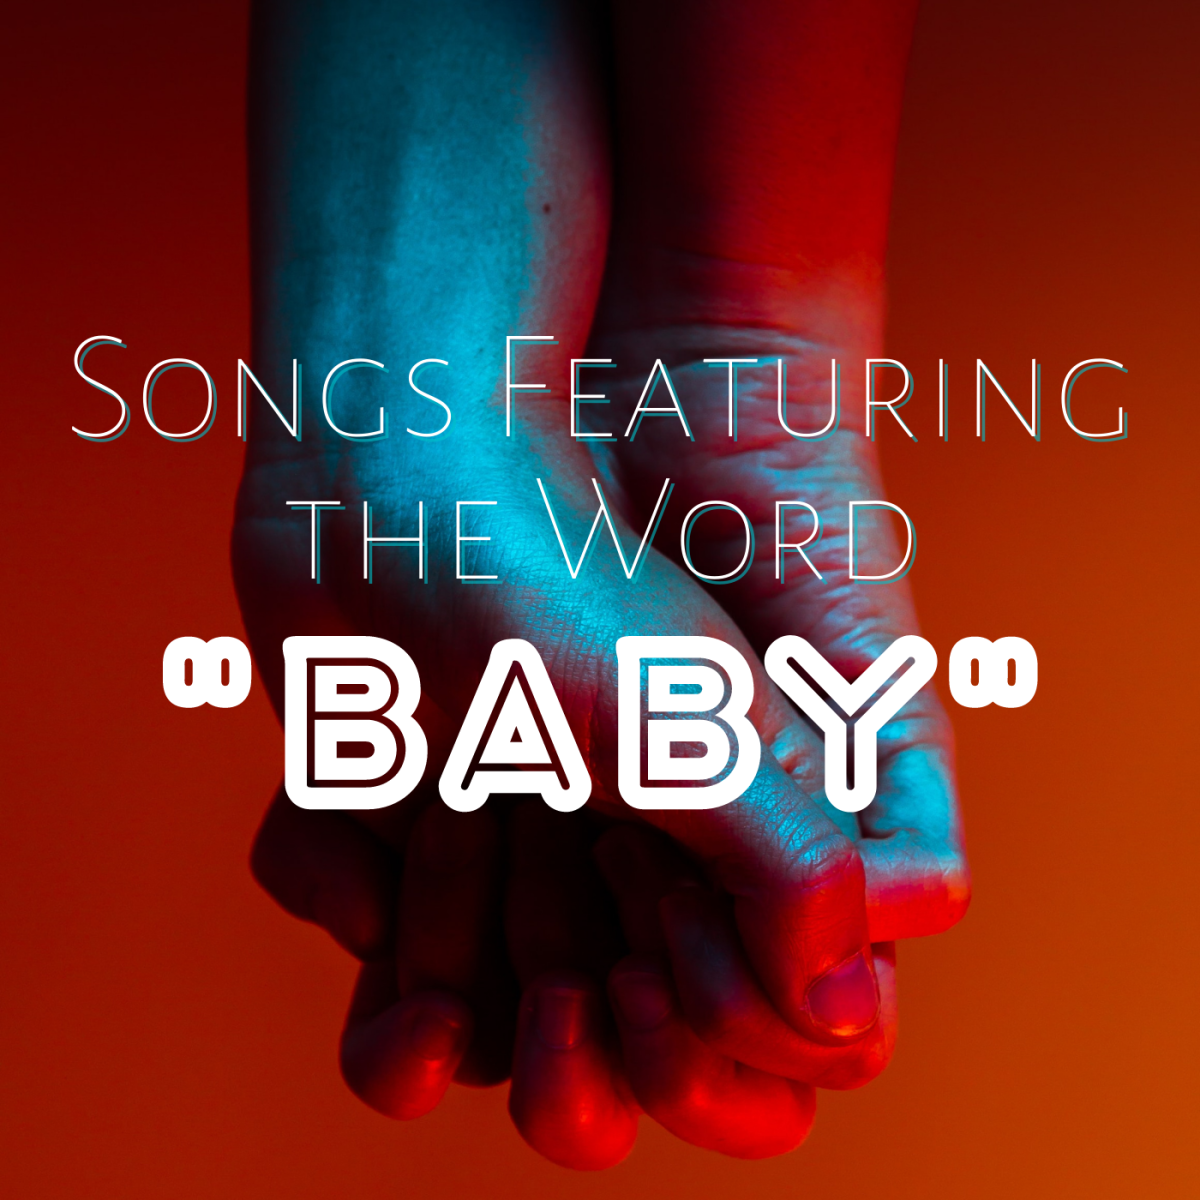 """Most of these songs aren't about actual babies, but the word """"baby"""" is a very common song lyric to describe a romantic partner."""